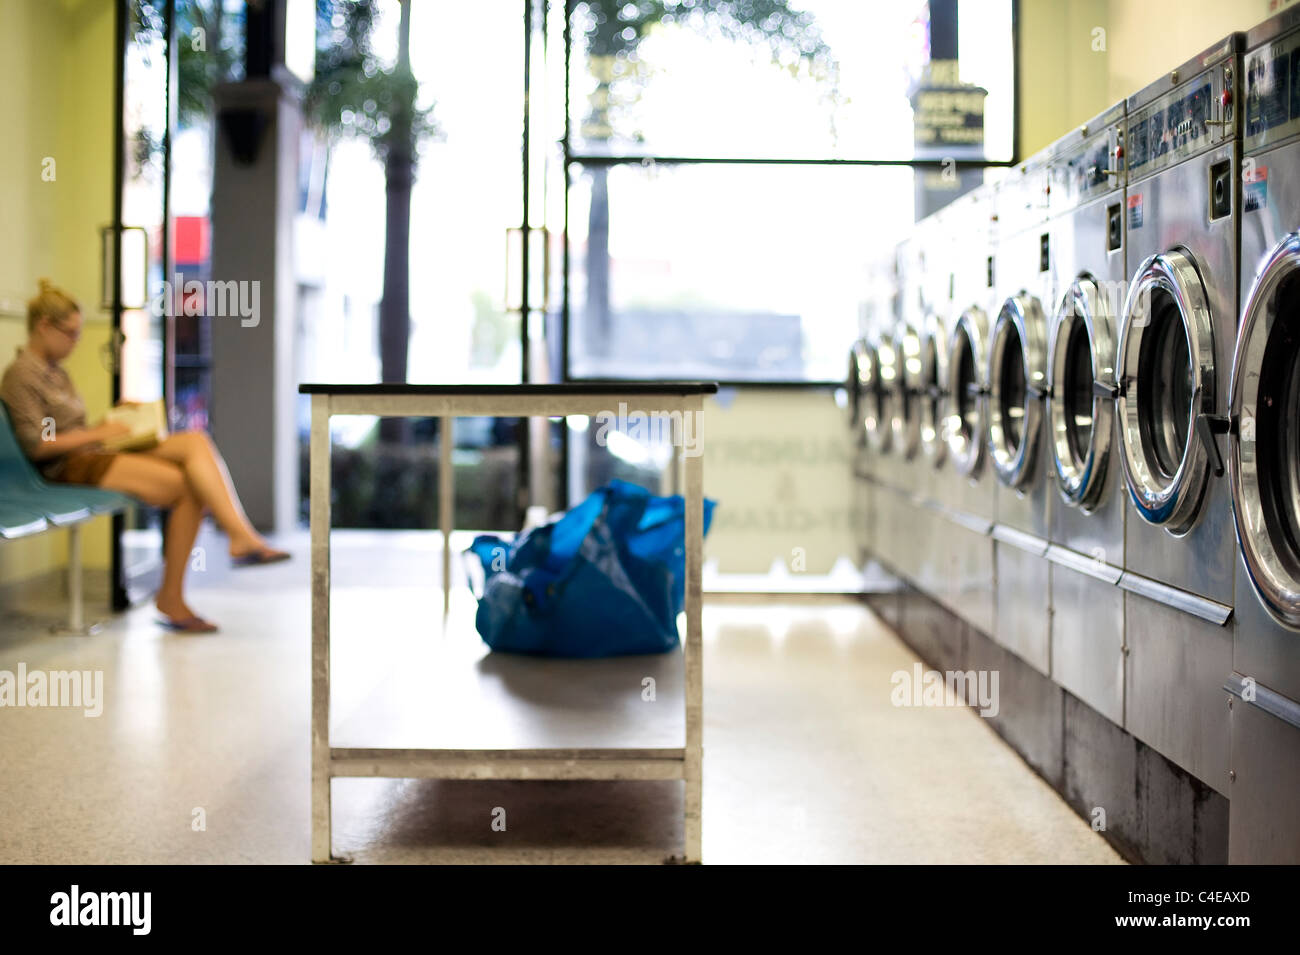 Girl waiting for washing in laundromat - Stock Image